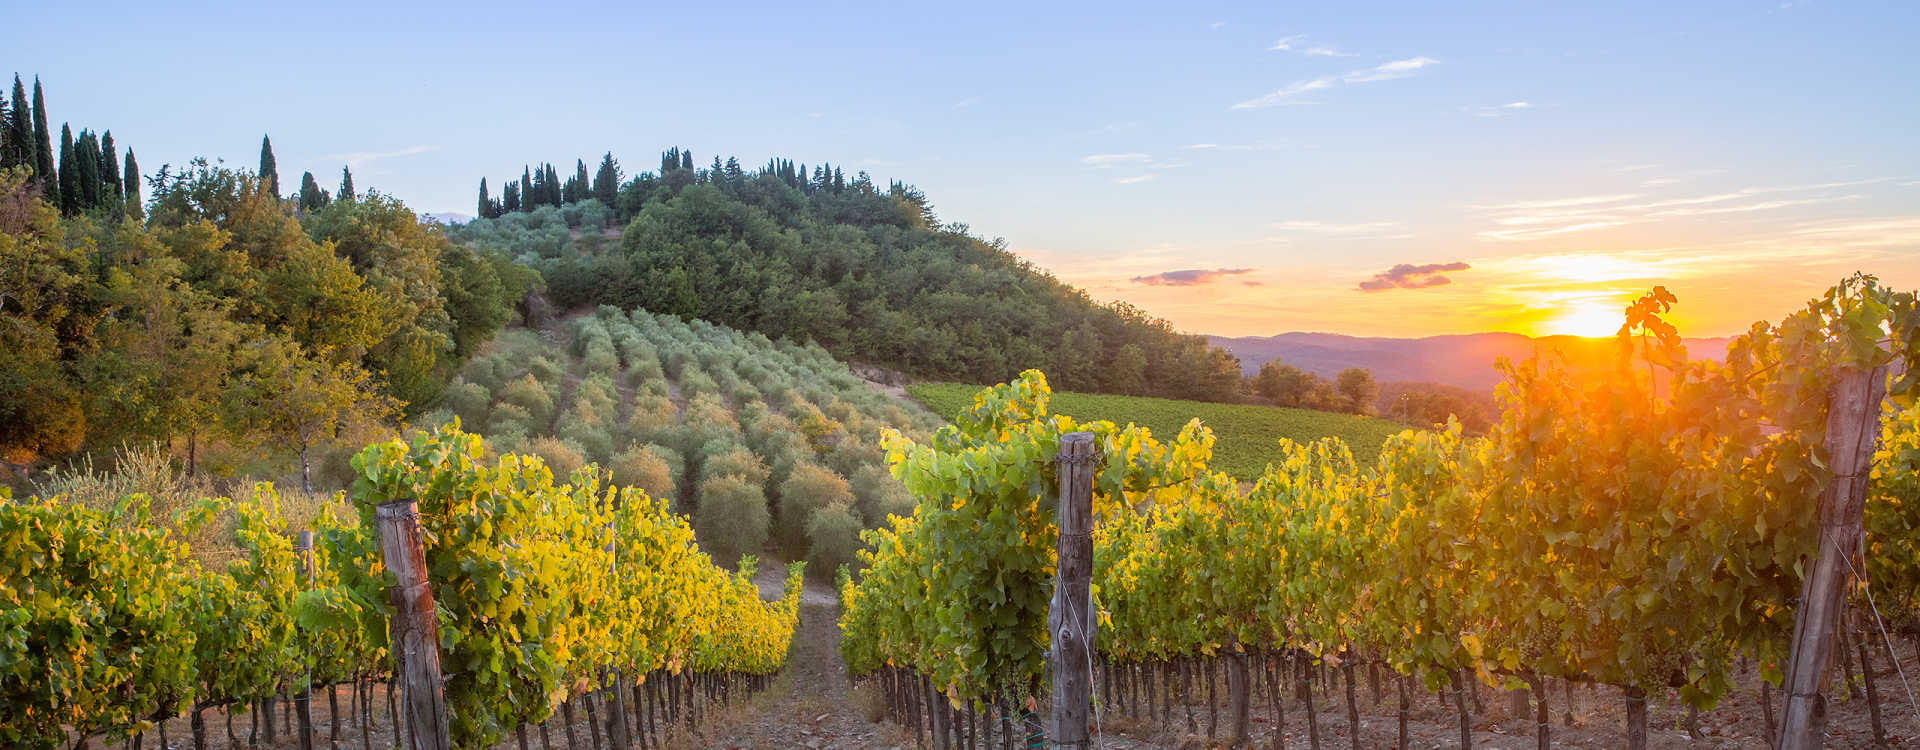 Image for Chianti Wine Tuscany, Italy content section